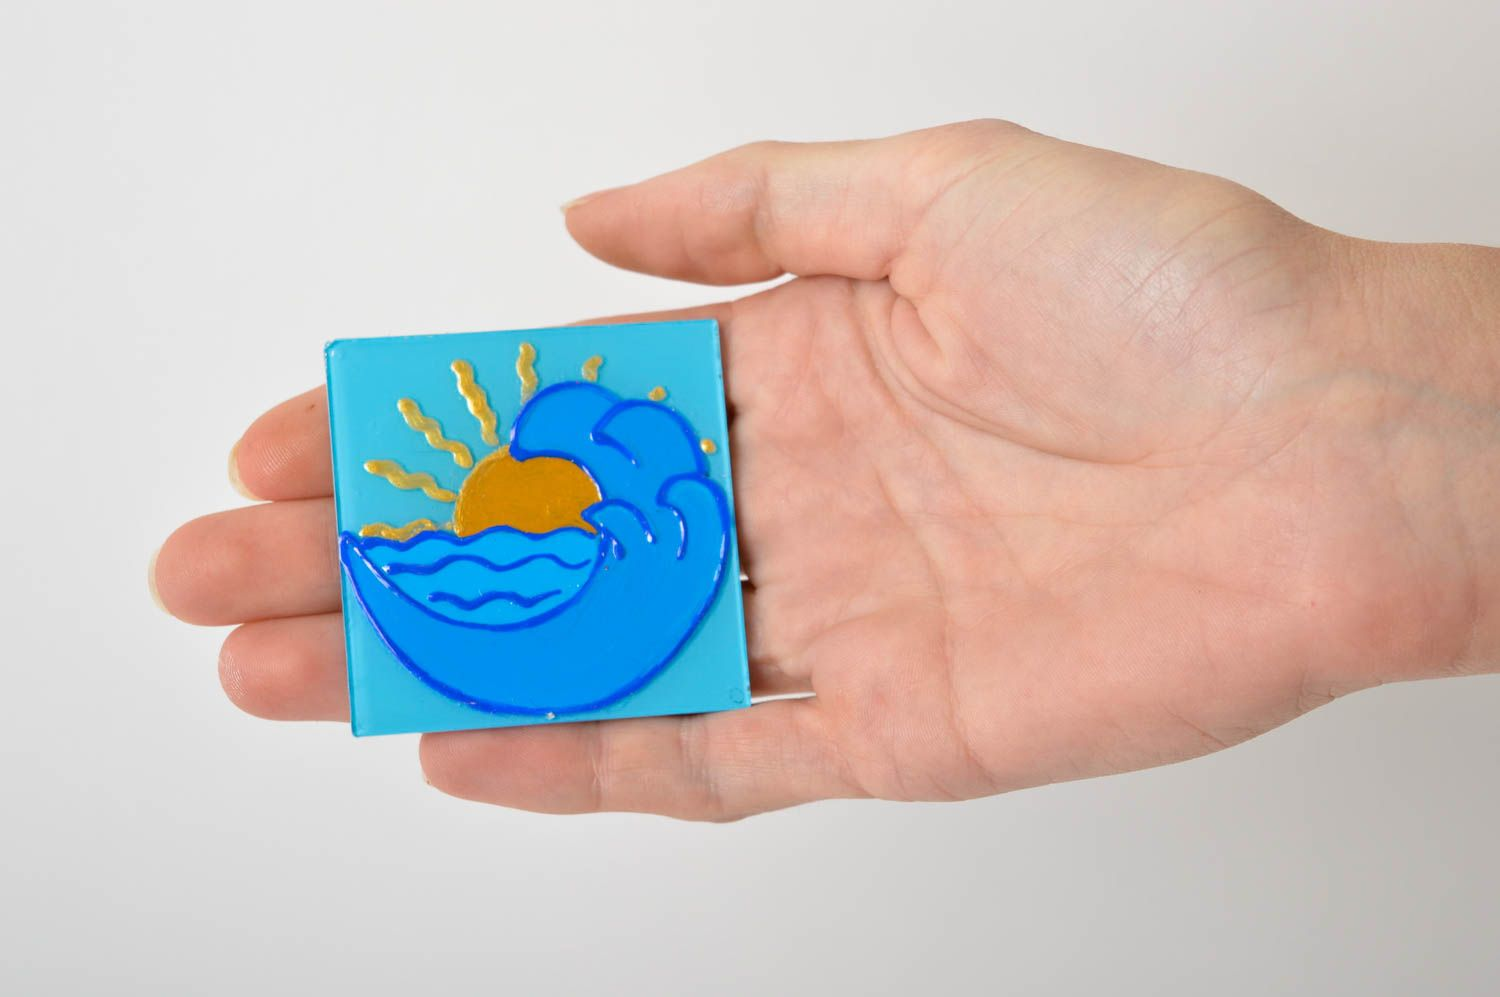 Unusual handmade fridge magnet funny magnets small gifts decorative use only photo 5